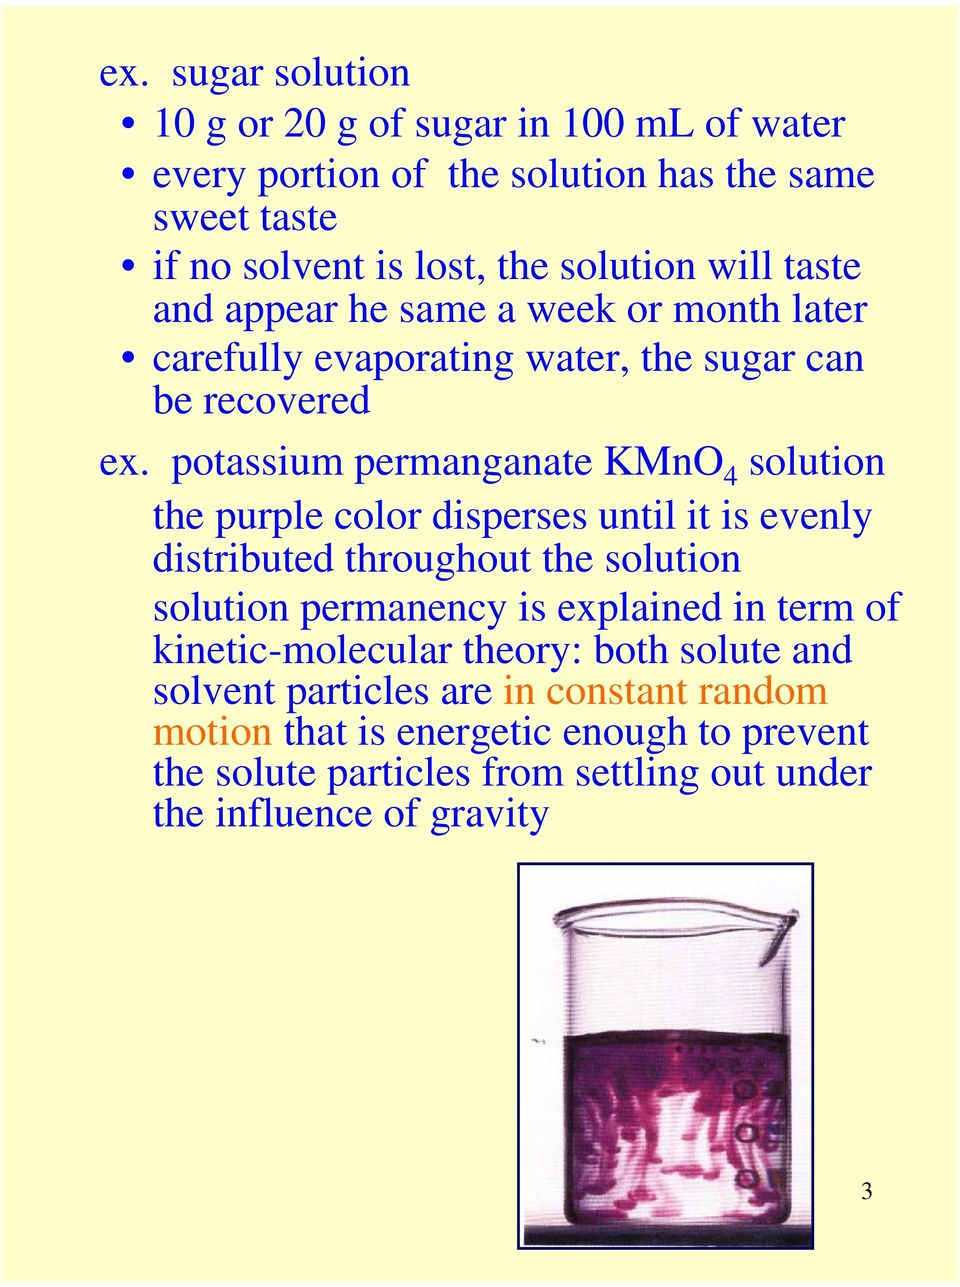 potassium permanganate KMnO 4 solution the purple color disperses until it is evenly distributed throughout the solution solution permanency is explained in